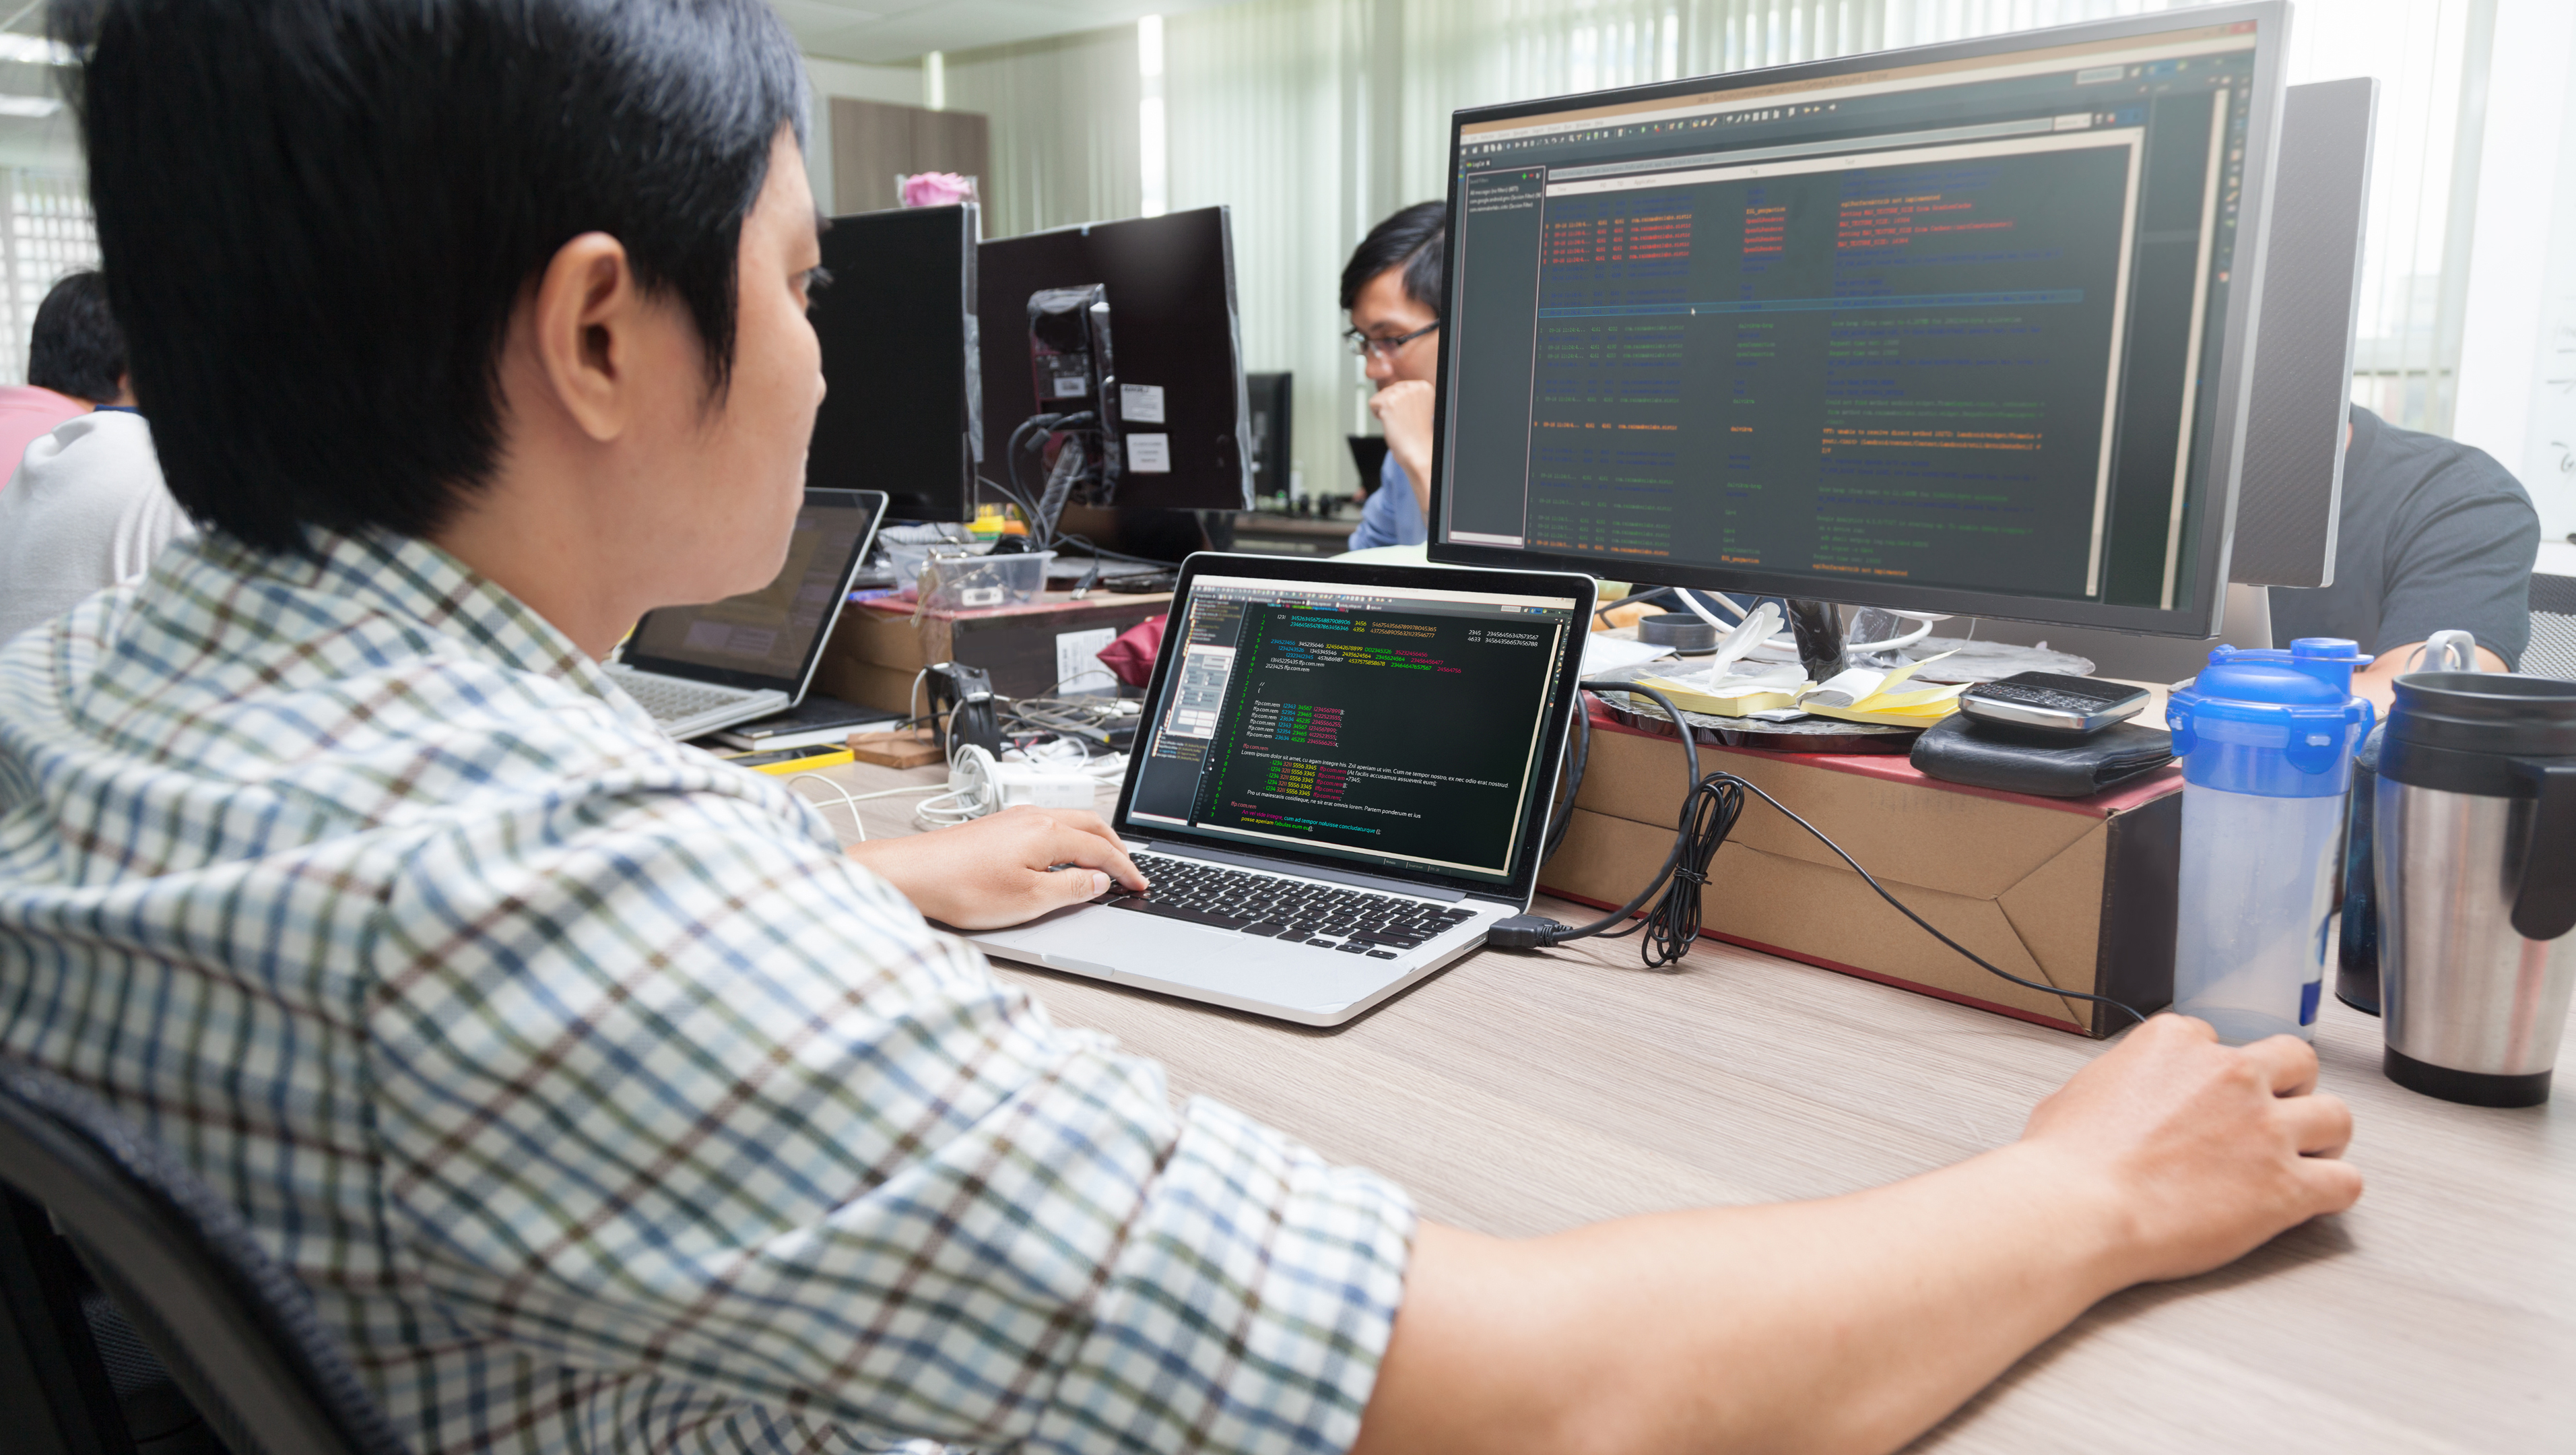 A System Administrator monitors the network from a computer screen.